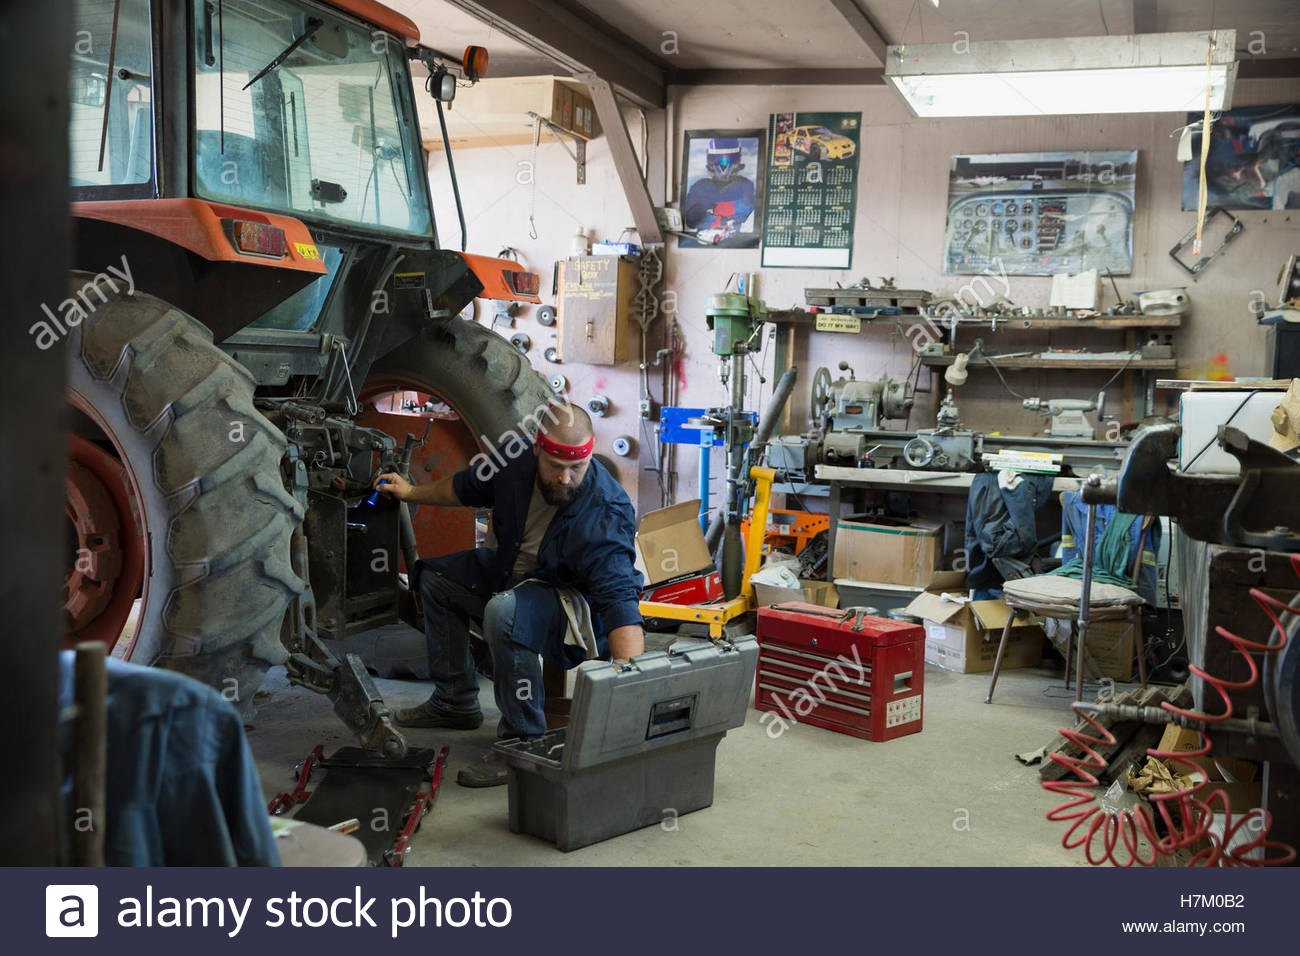 Mechanic with tool box working on tractor in workshop - Stock Image